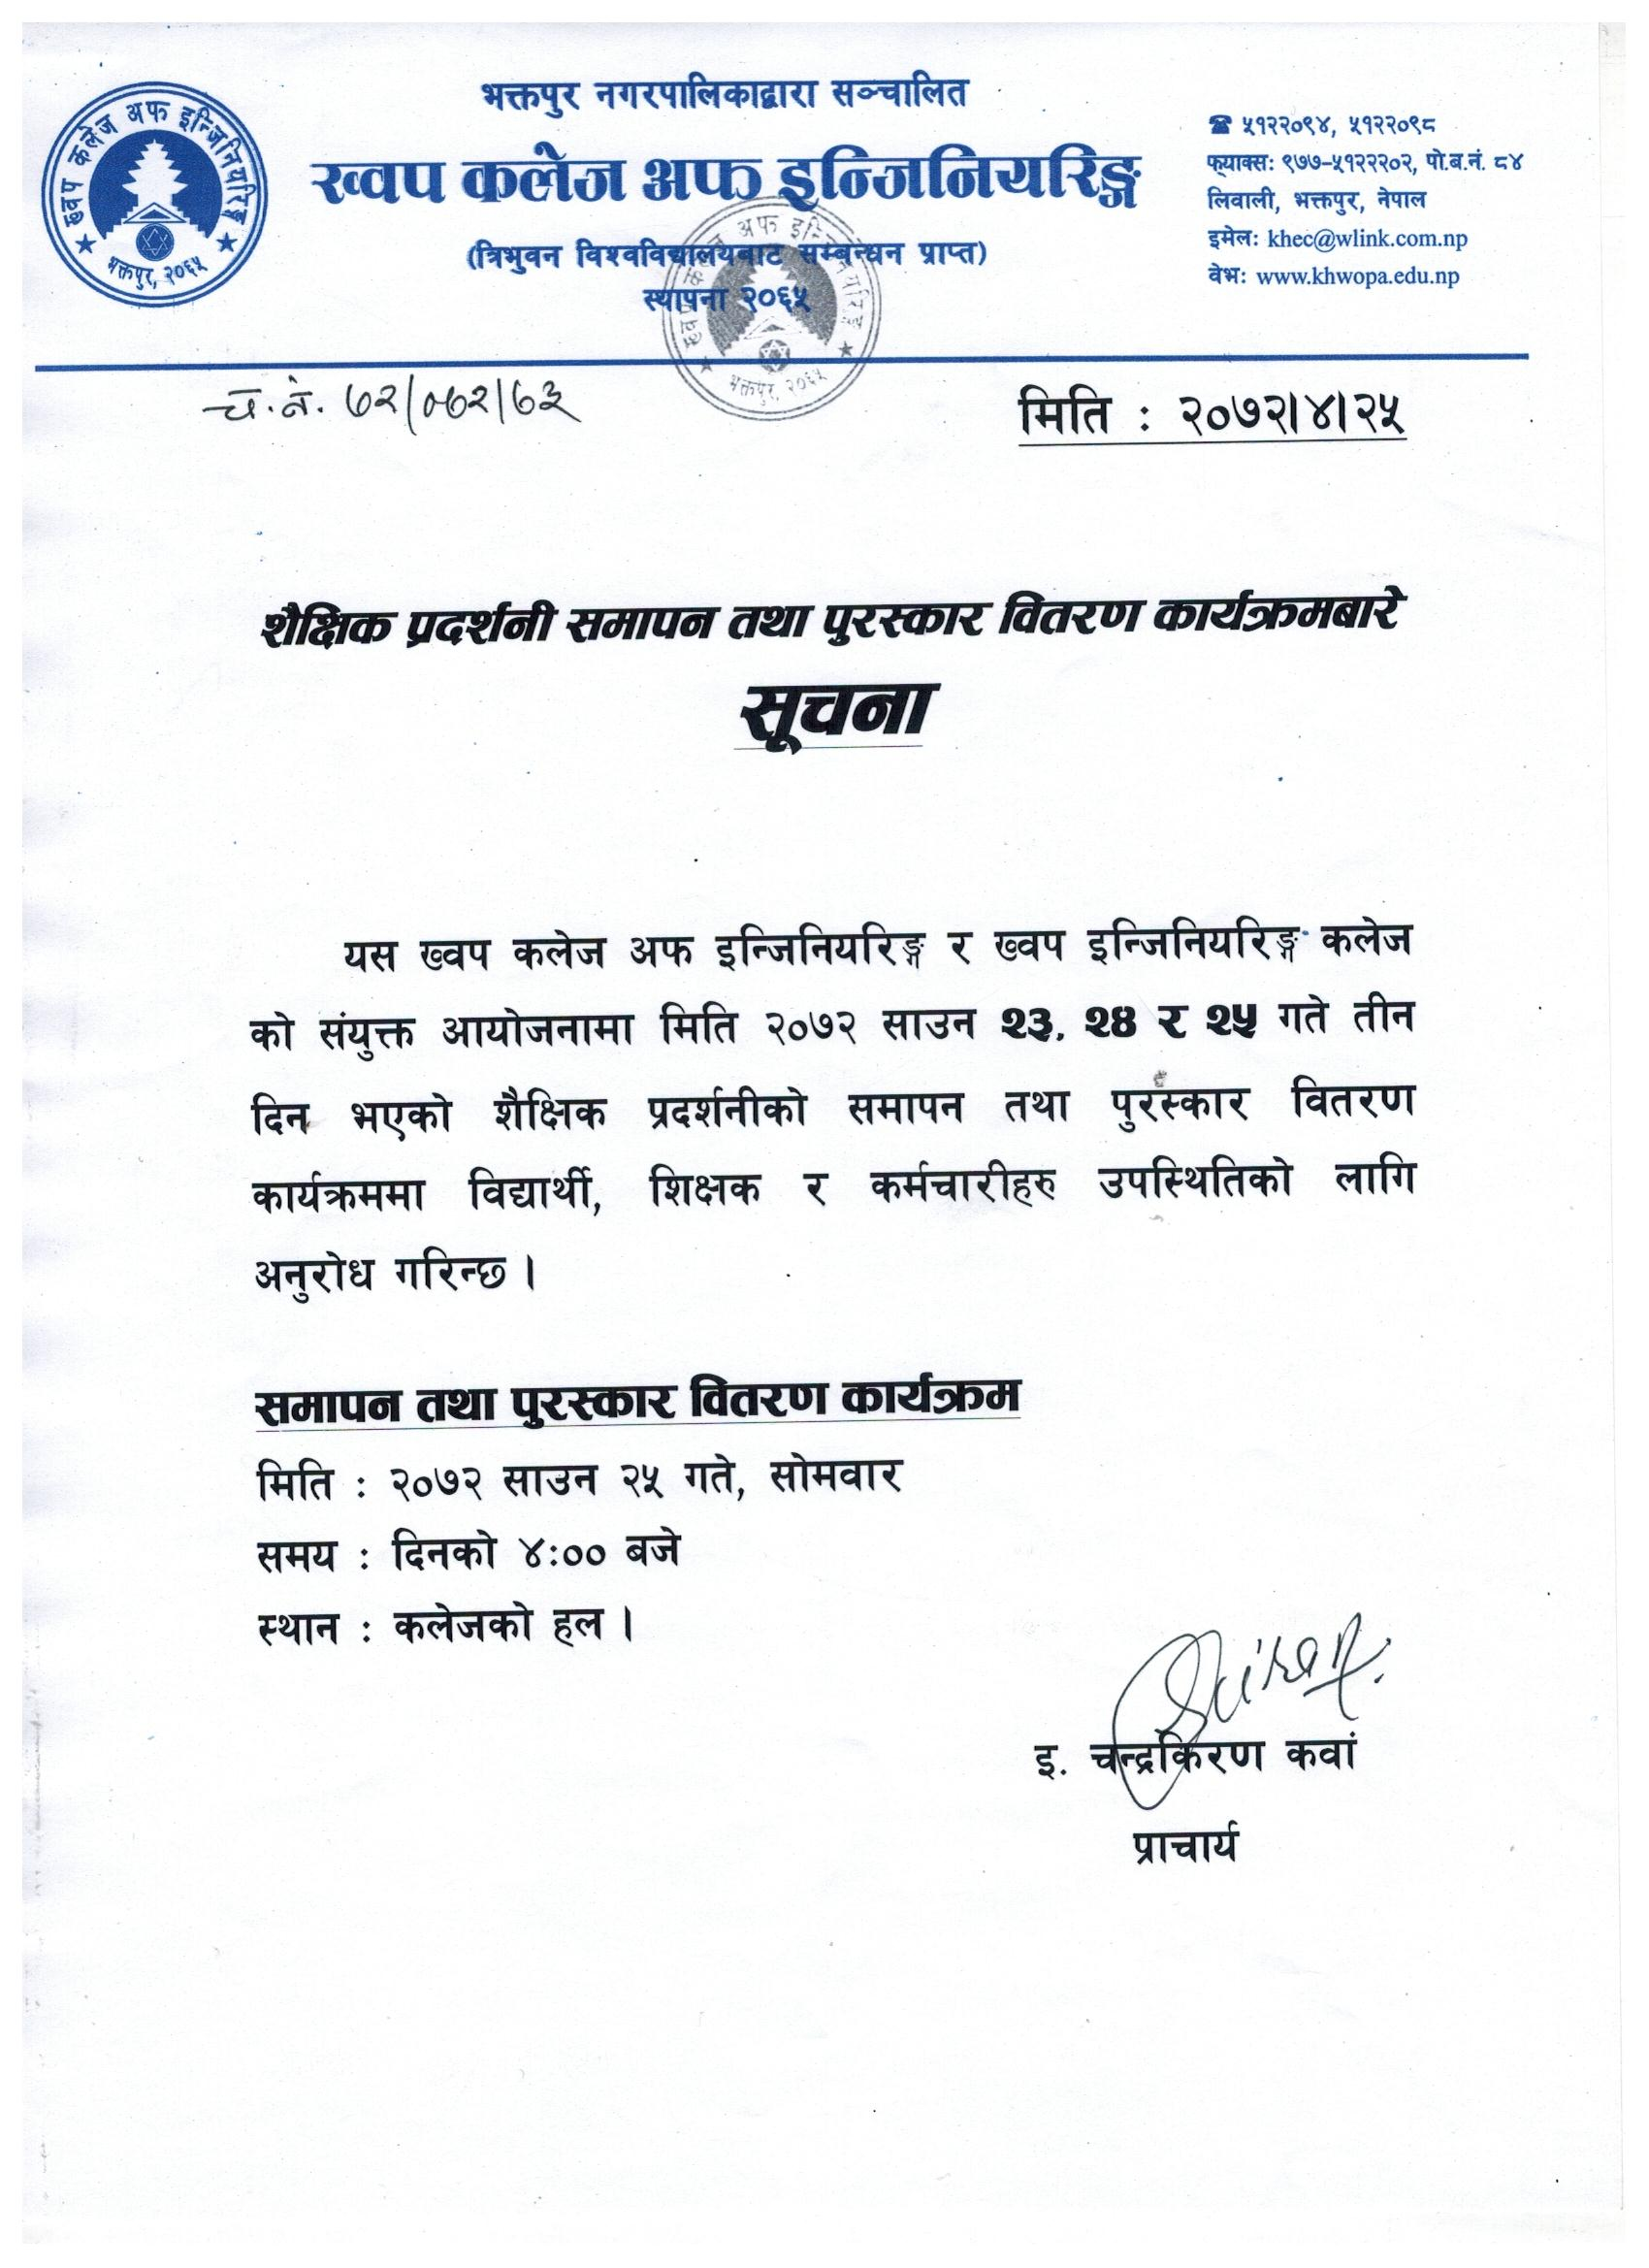 Notice for Closing Ceremony of Educational Exhibition & Prize Distribution Program